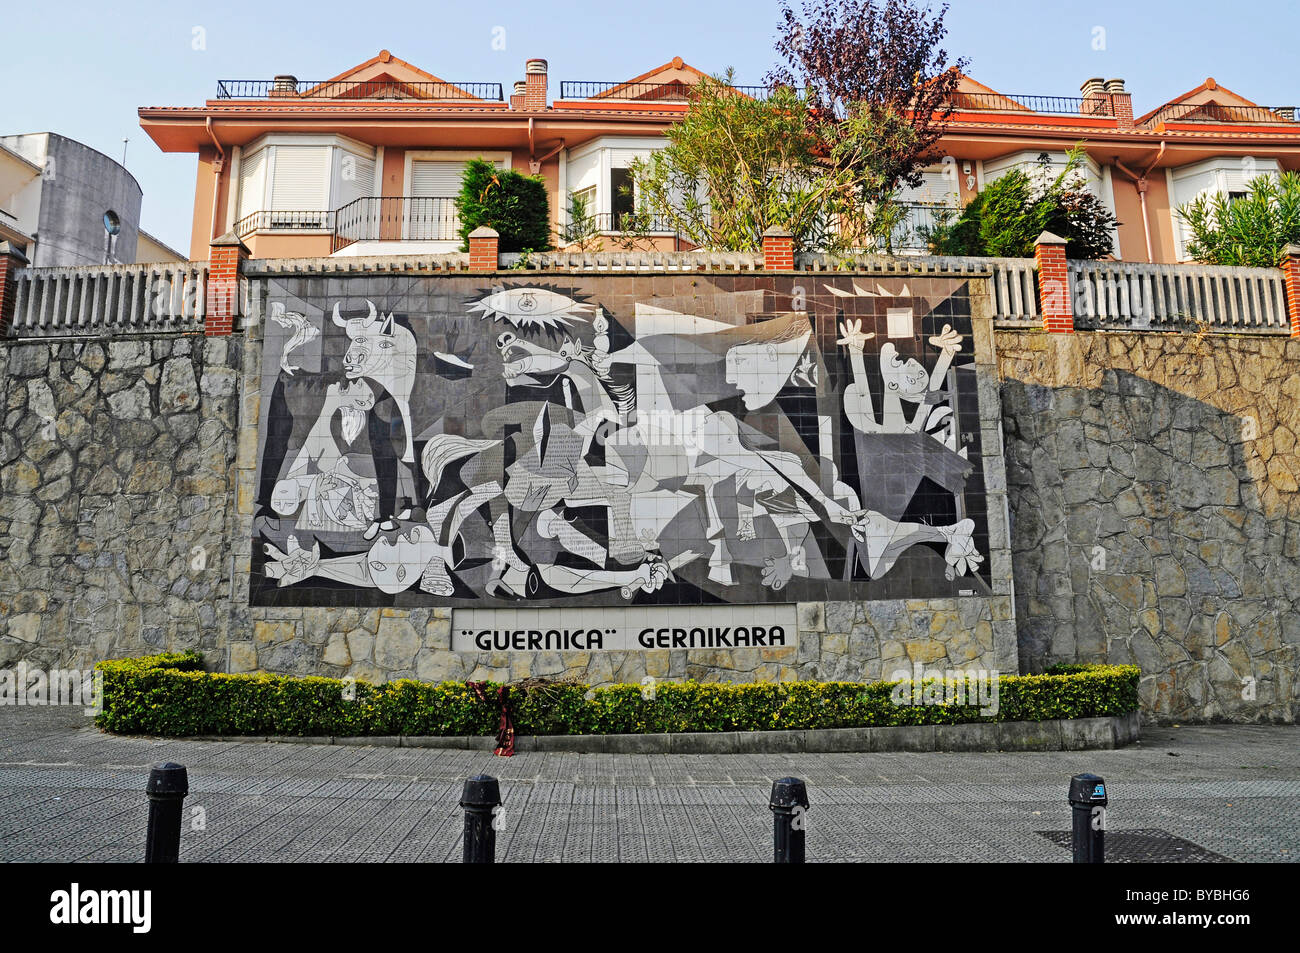 Guernica, by Pablo Picasso, reproduction made of tiles on a wall, Gernika Lumo, Guernica, Bizkaia province, Pais - Stock Image